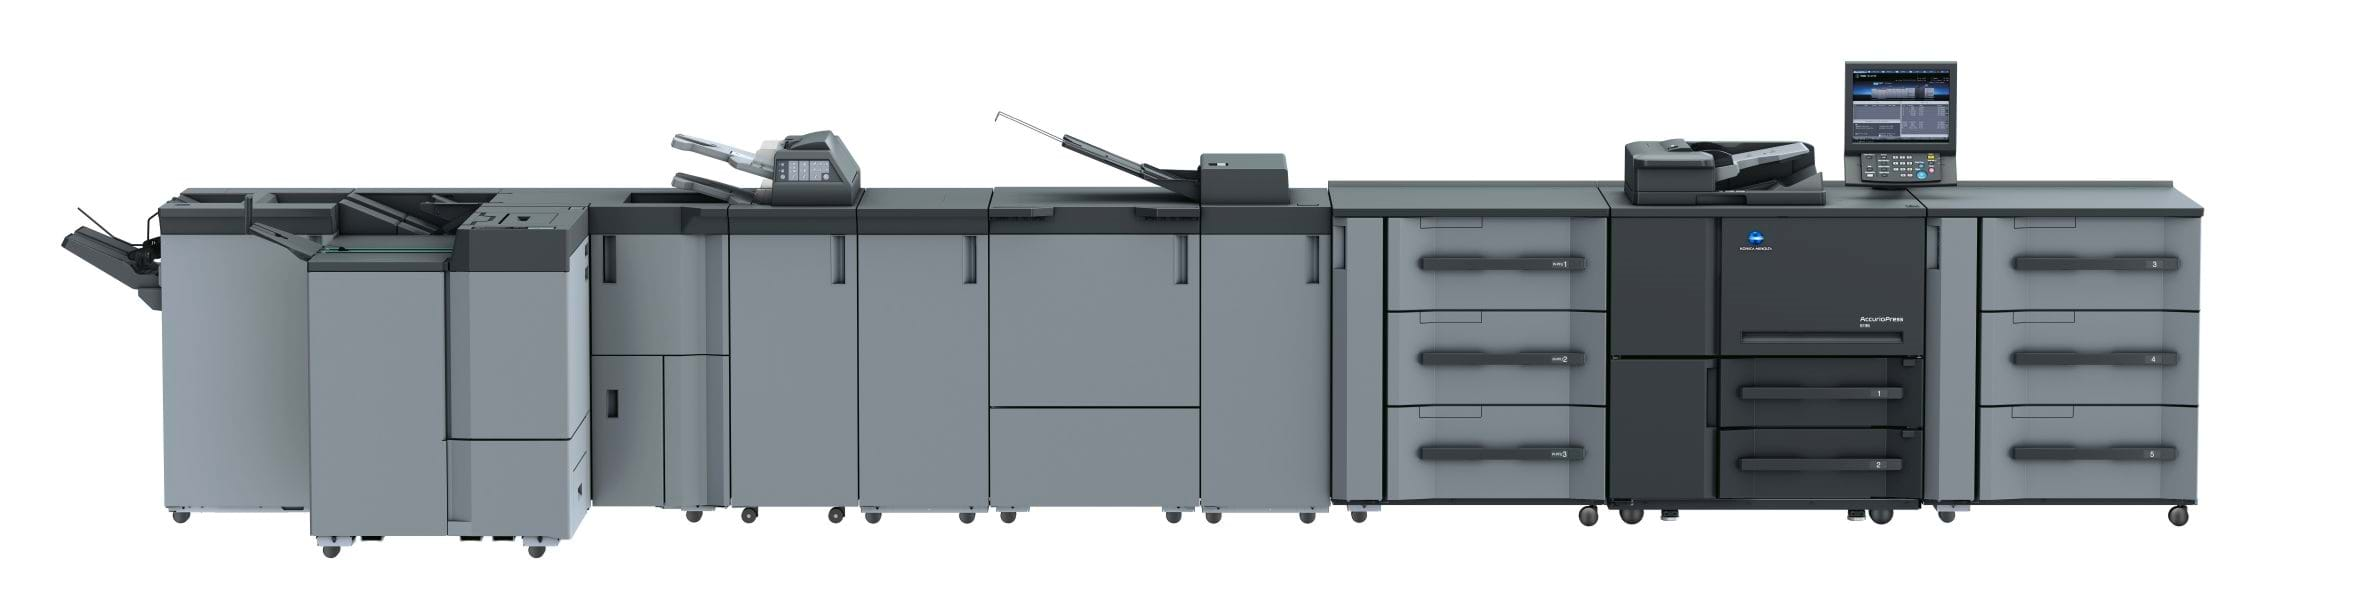 Konica Minolta accurio press 6136p professional printer